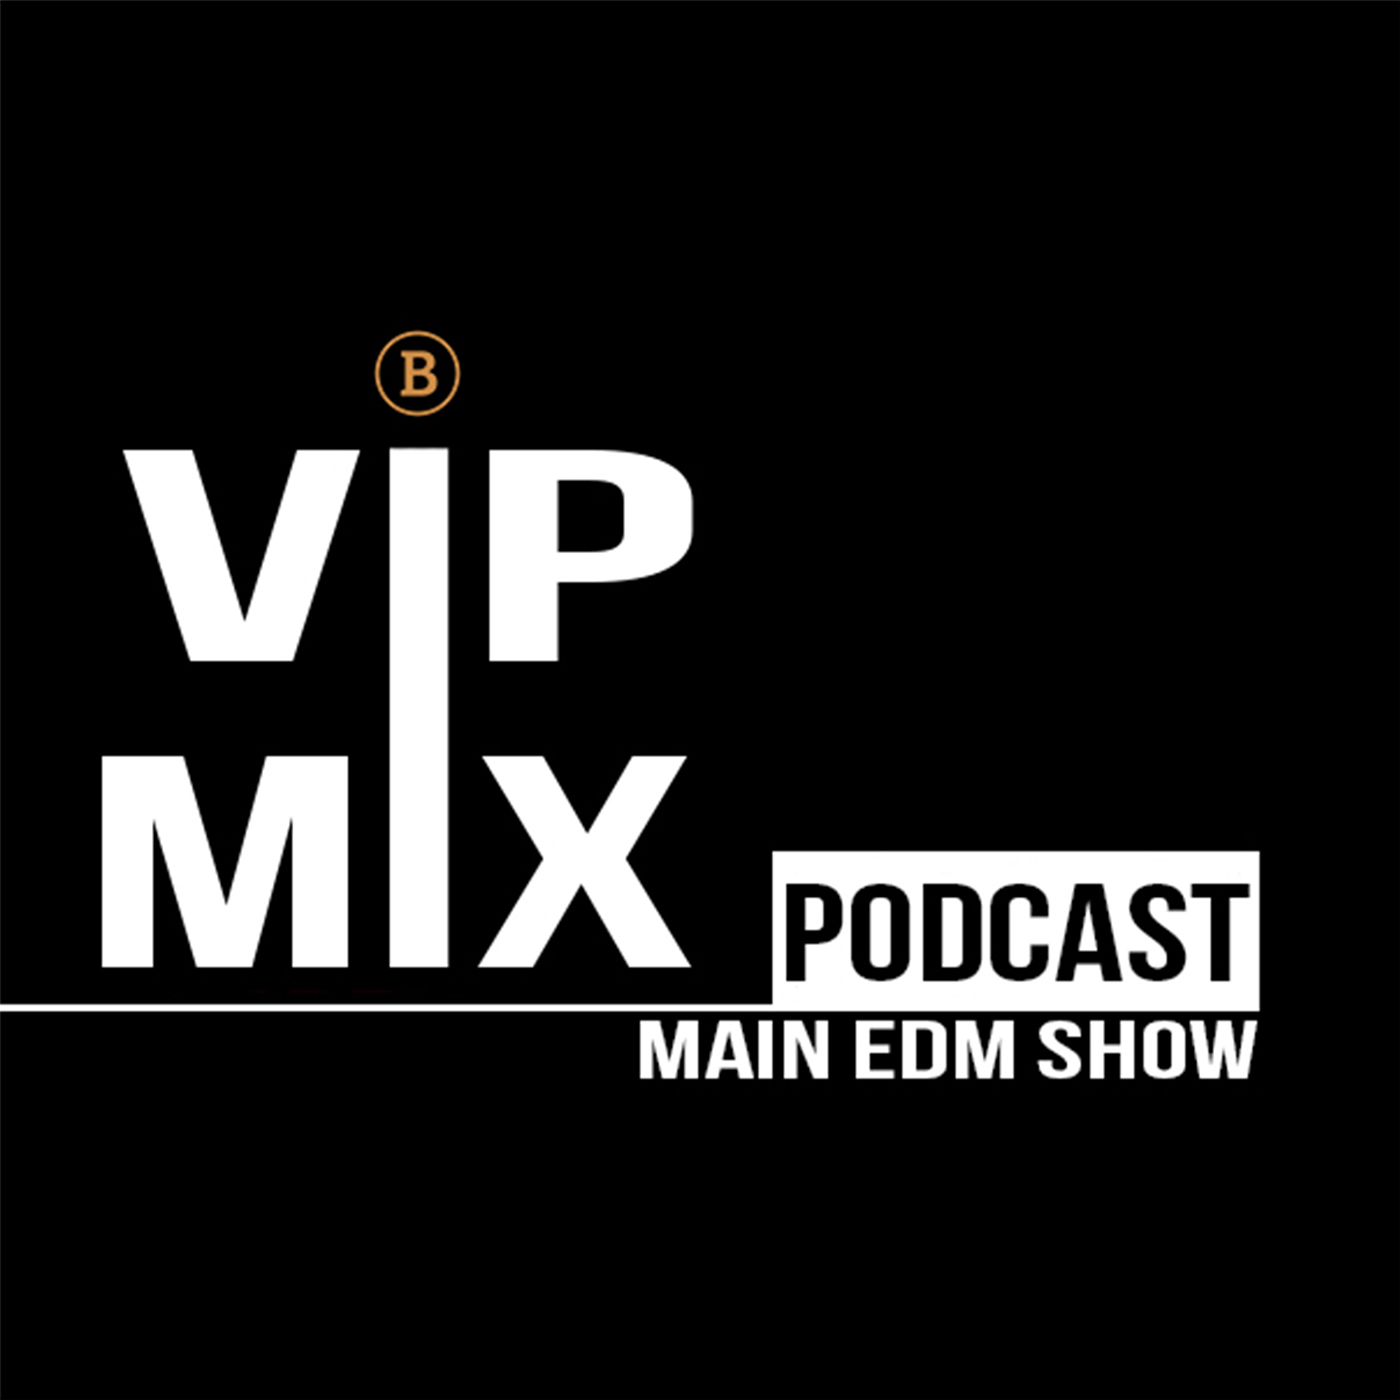 VIP MIX PODCAST